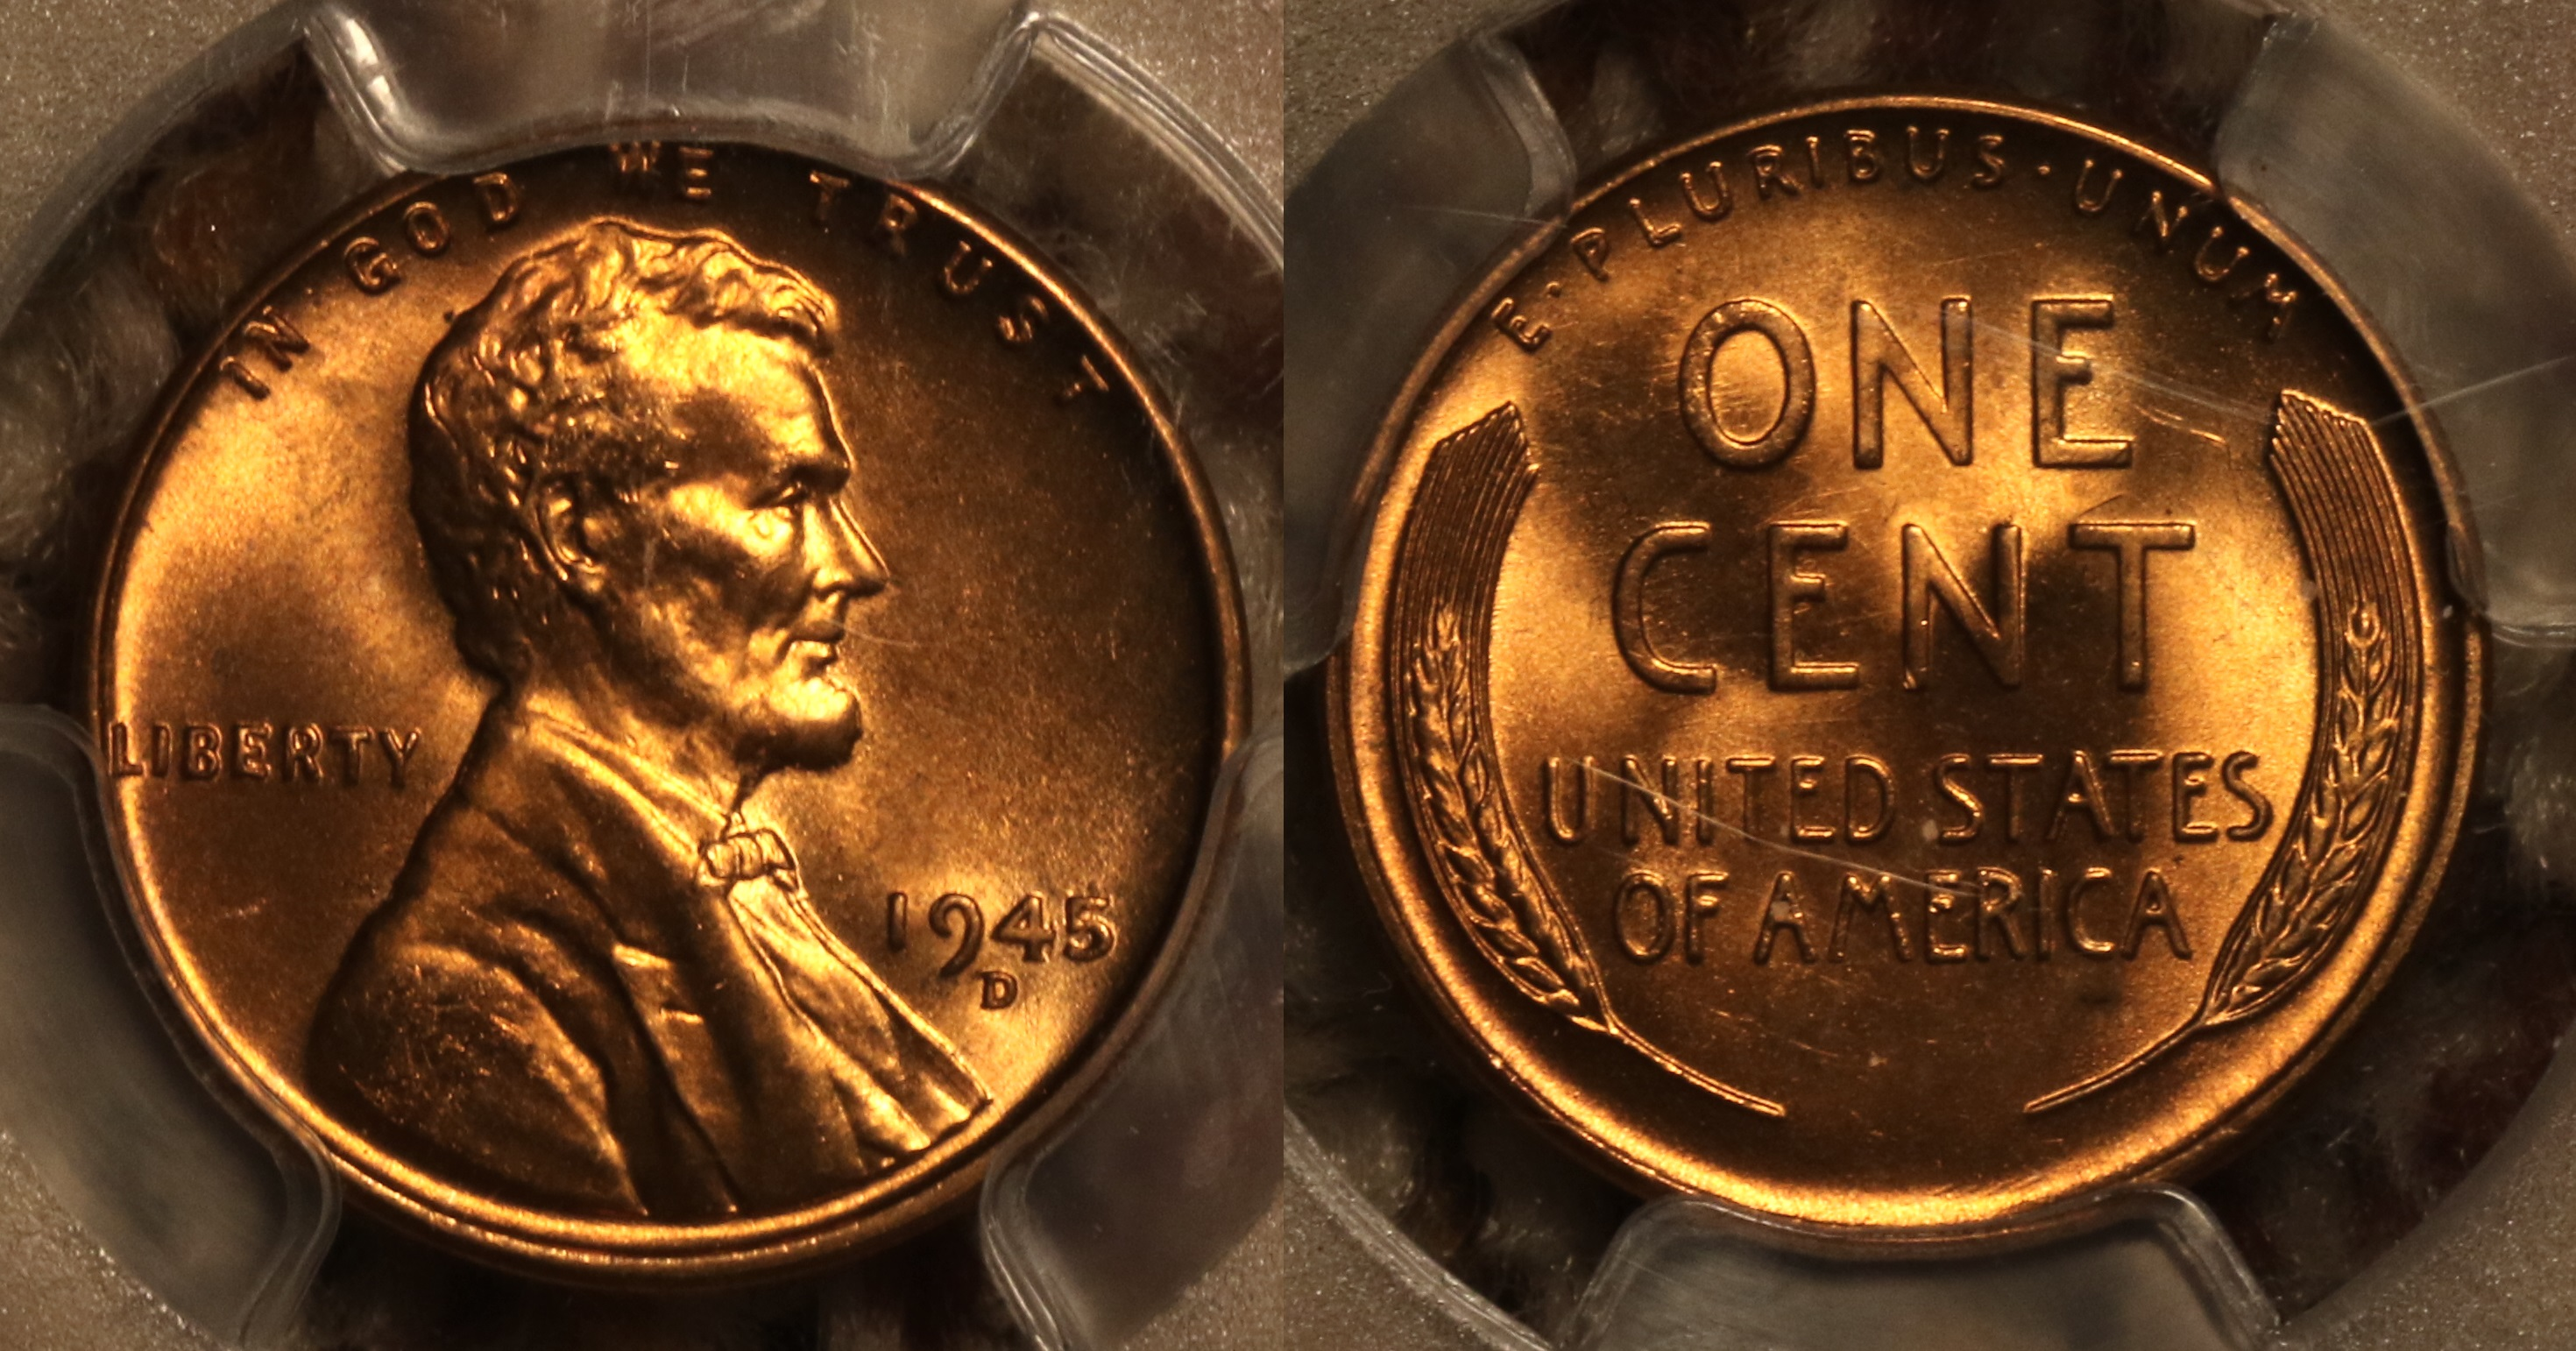 1945-D Lincoln Cent PCGS MS-66 Red camera